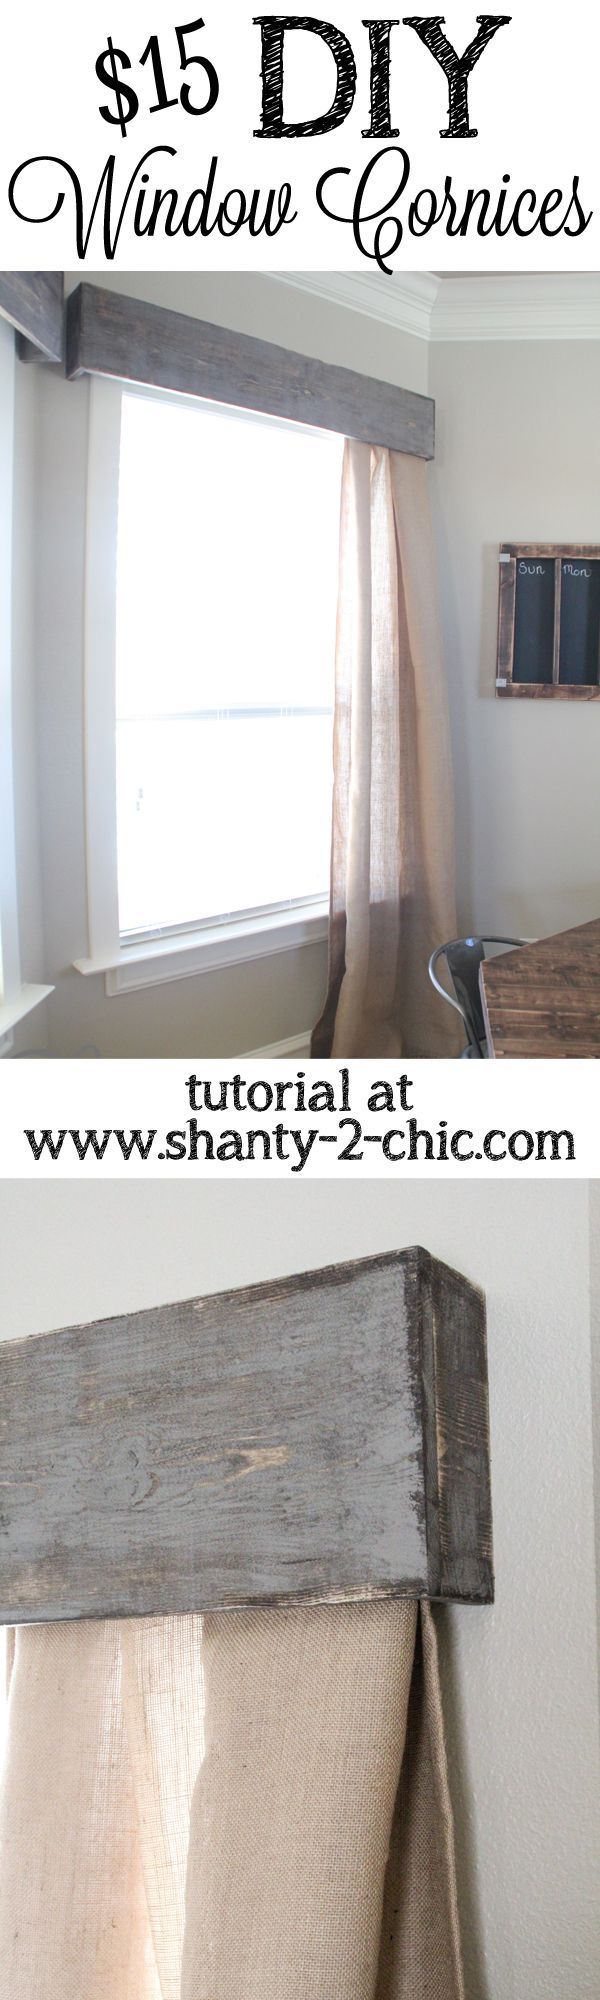 DIY Wooden Window Cornice. This is a good inexpensive alternative to a pre-fab cornice board and it's simple -- great for a cottage, beach house, or farm house look.